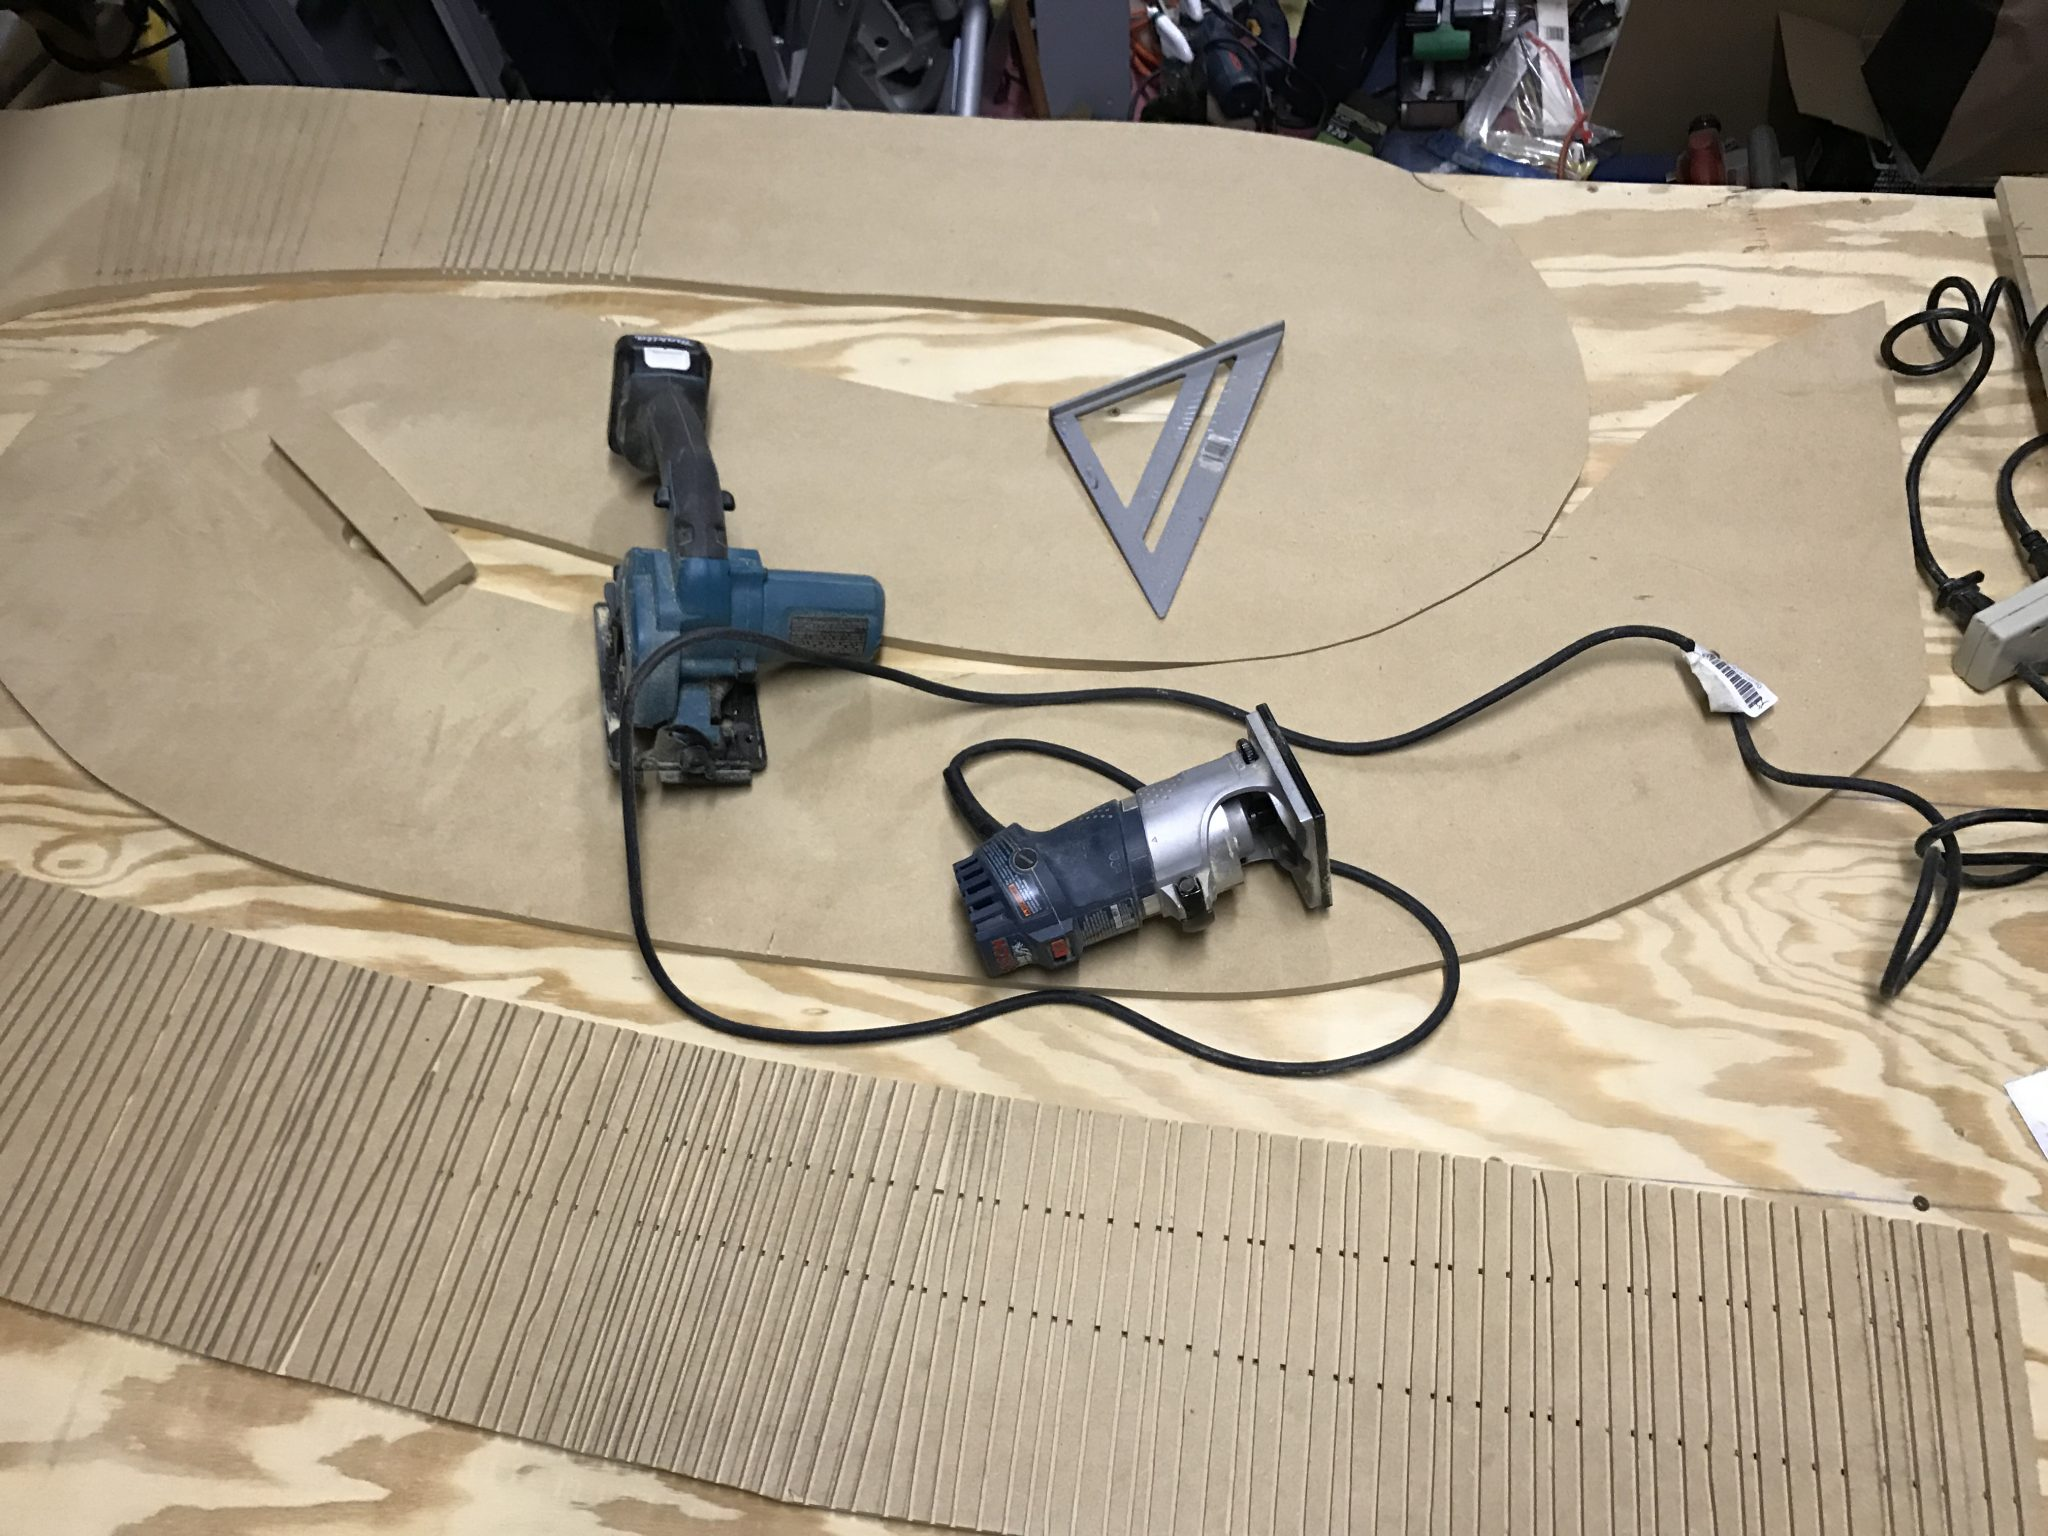 New Rally Track Update Moving To Kings 7 2 17 Austin Slot Car Wiring The Next Step Was Cut Slots On Bottom Of That Run Perpendicular Routed Lane These Cutouts Needed Be Done Every 3 8 With